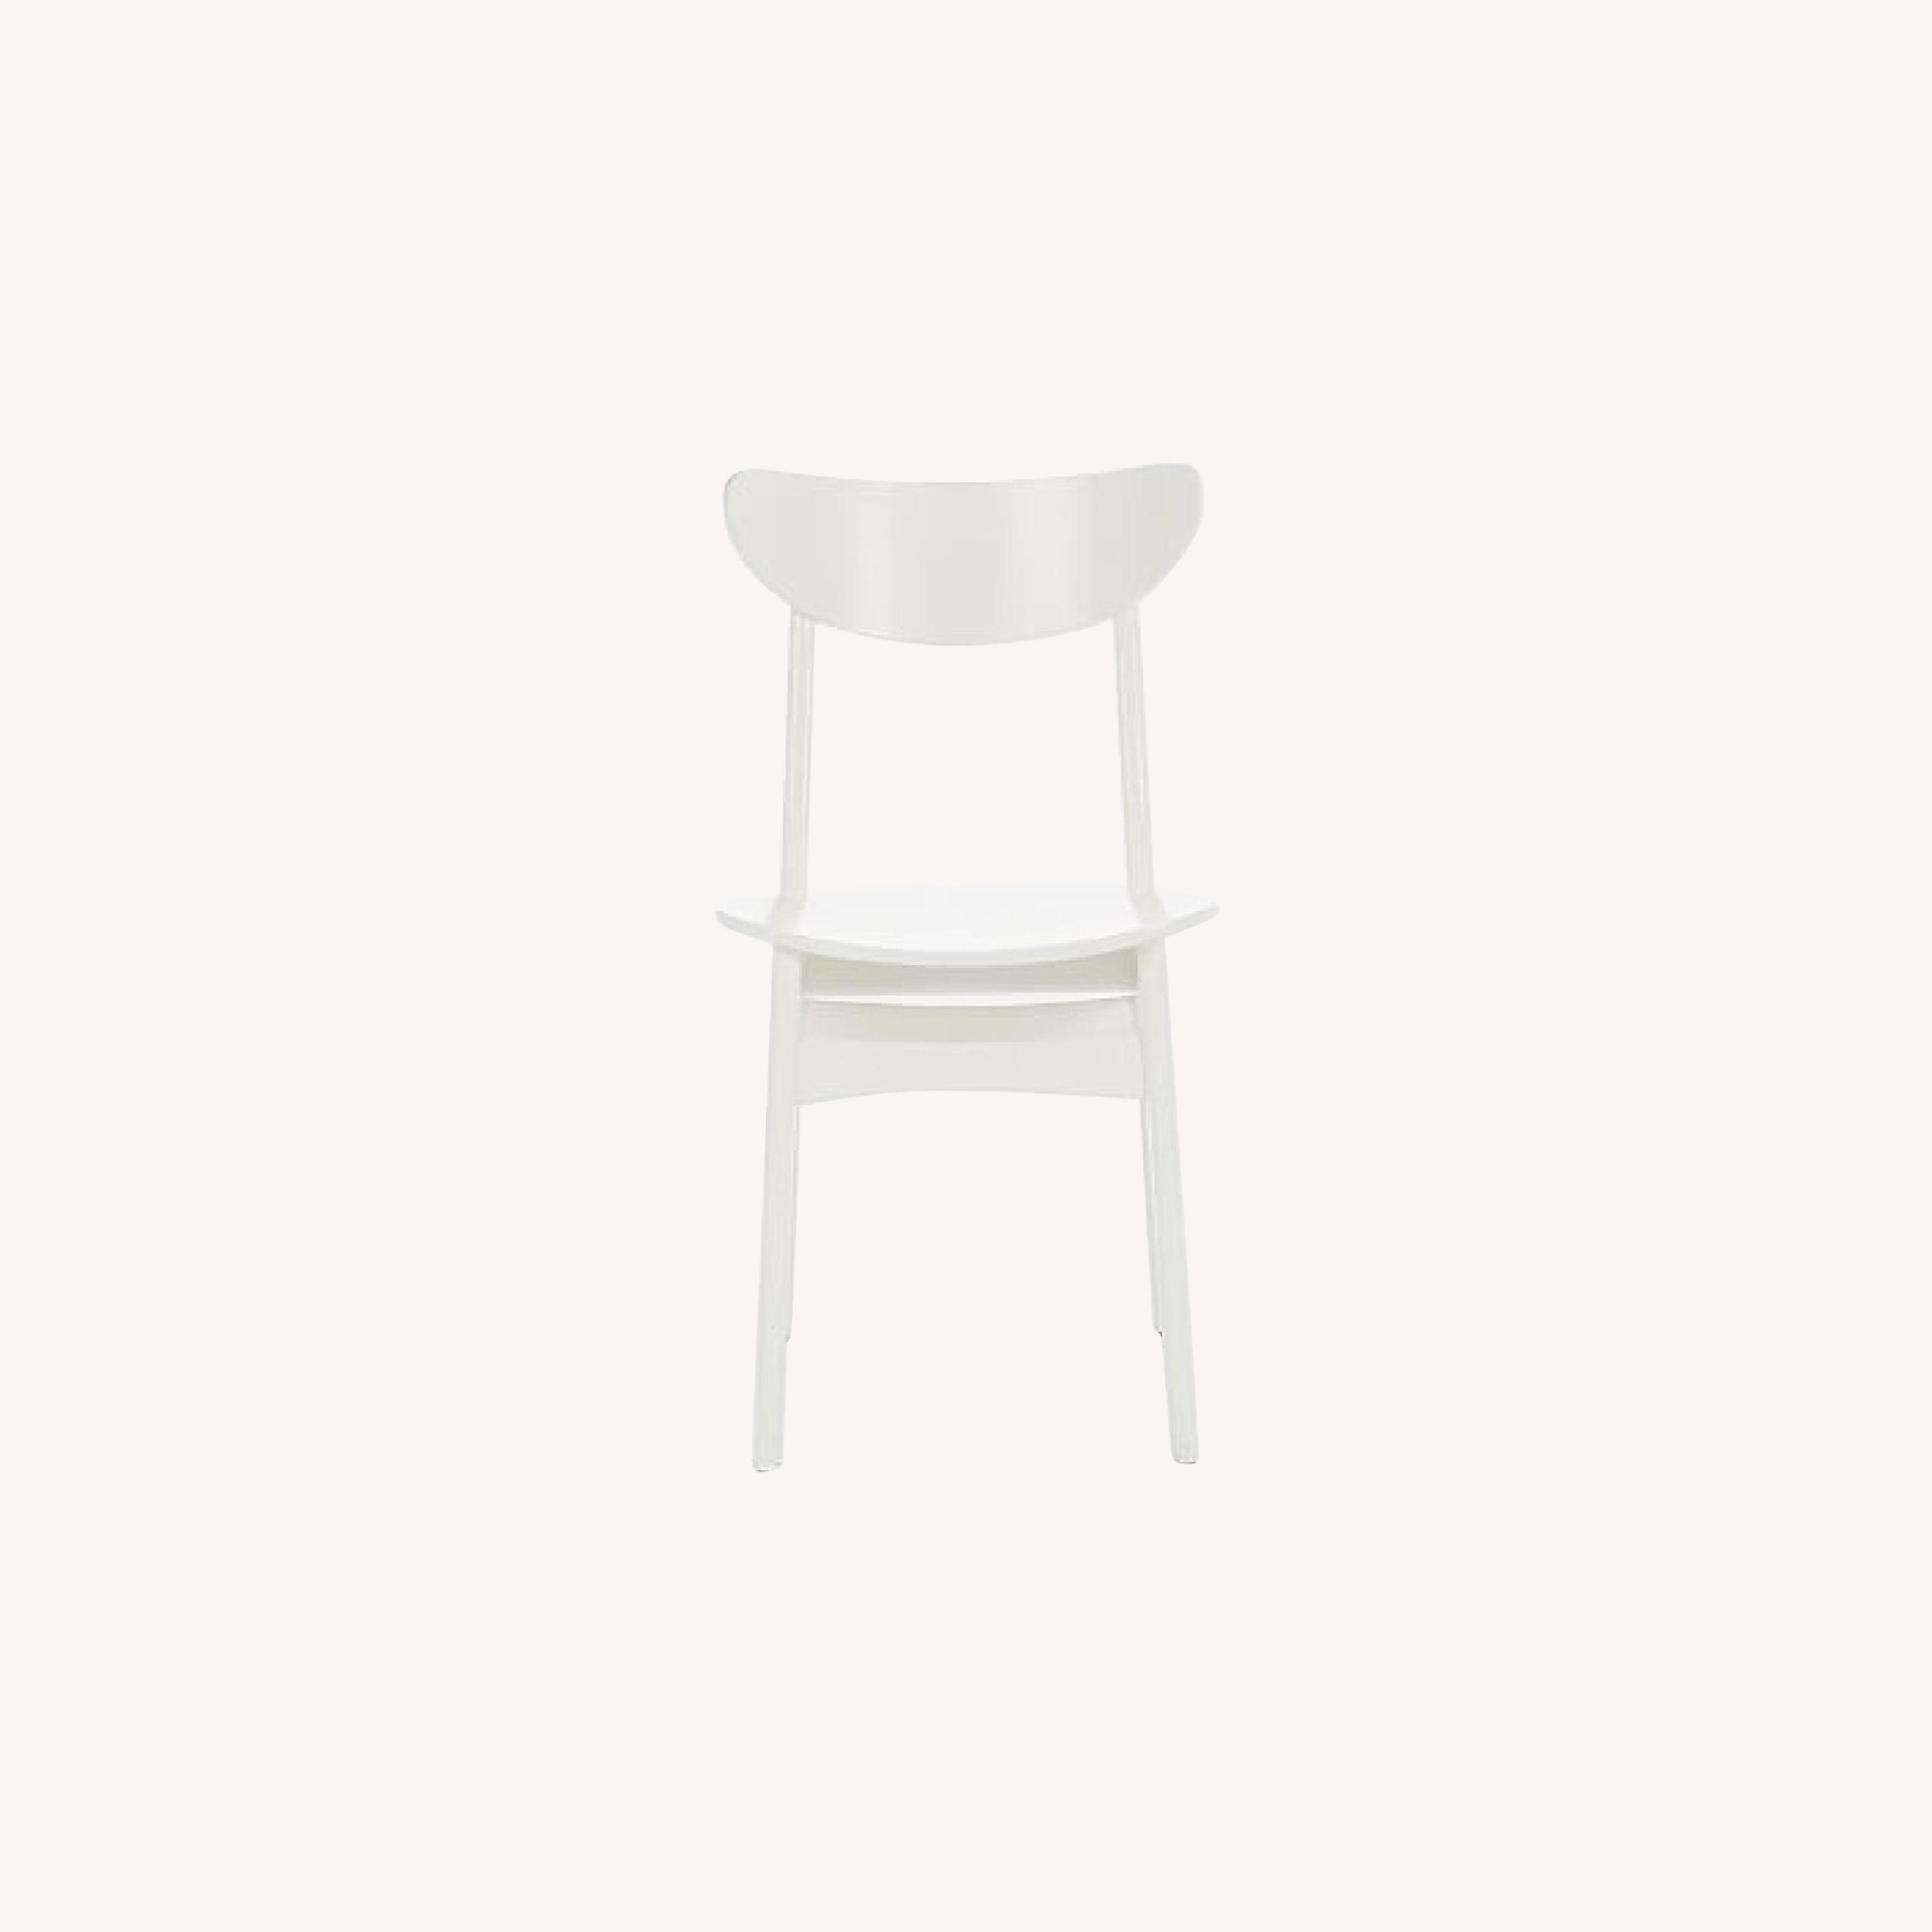 West Elm Classic Cafe Dining Chair in White Lacquer